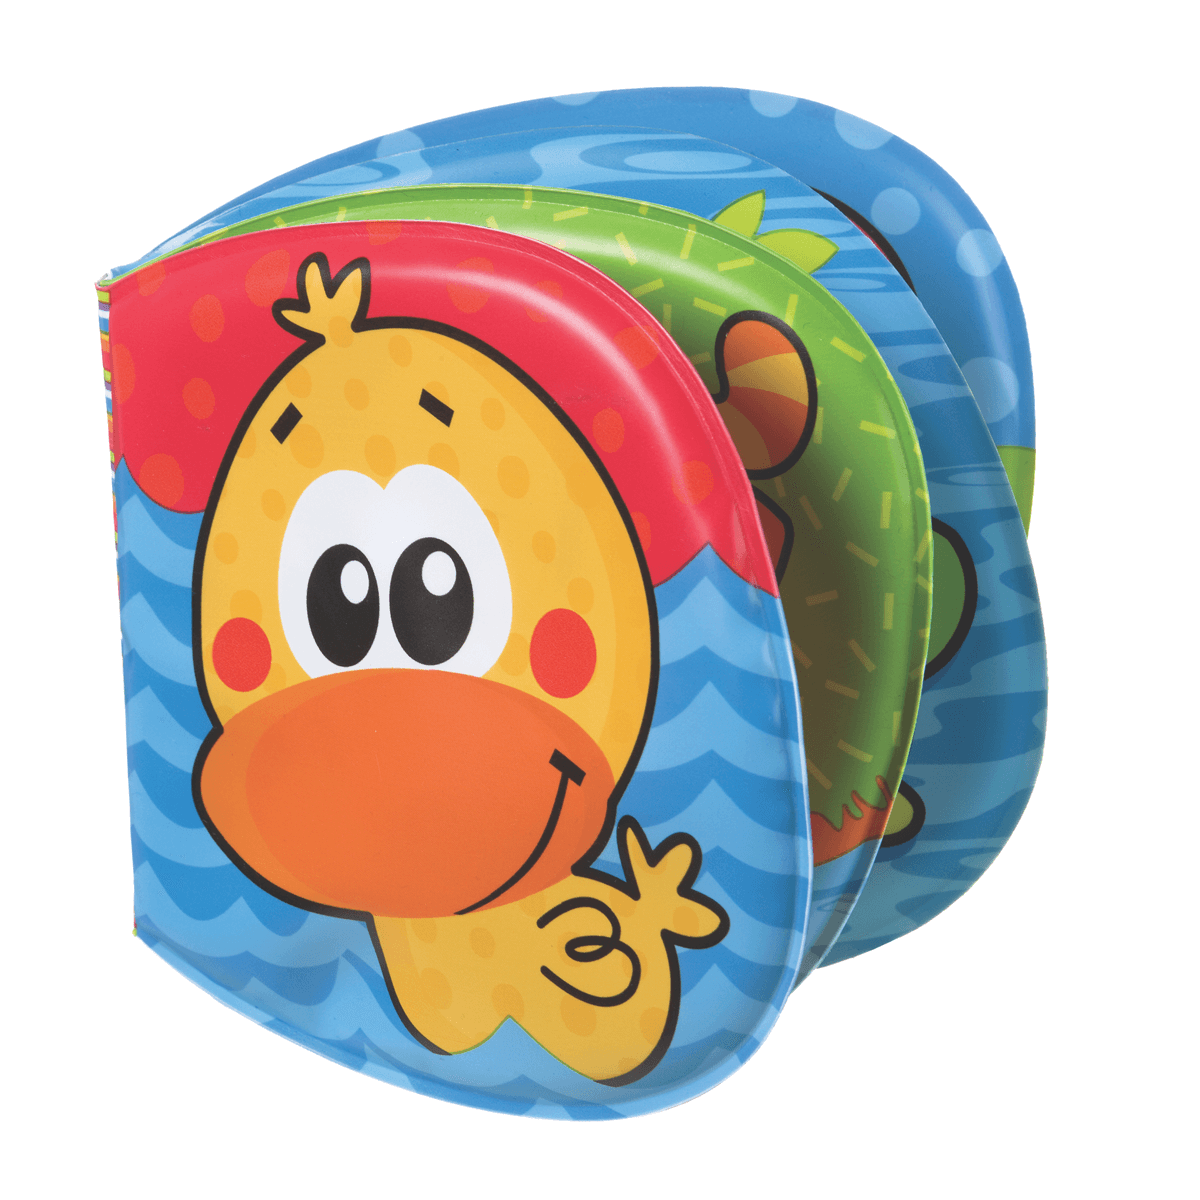 Playgro Garden Bath Book from Early Learning Center